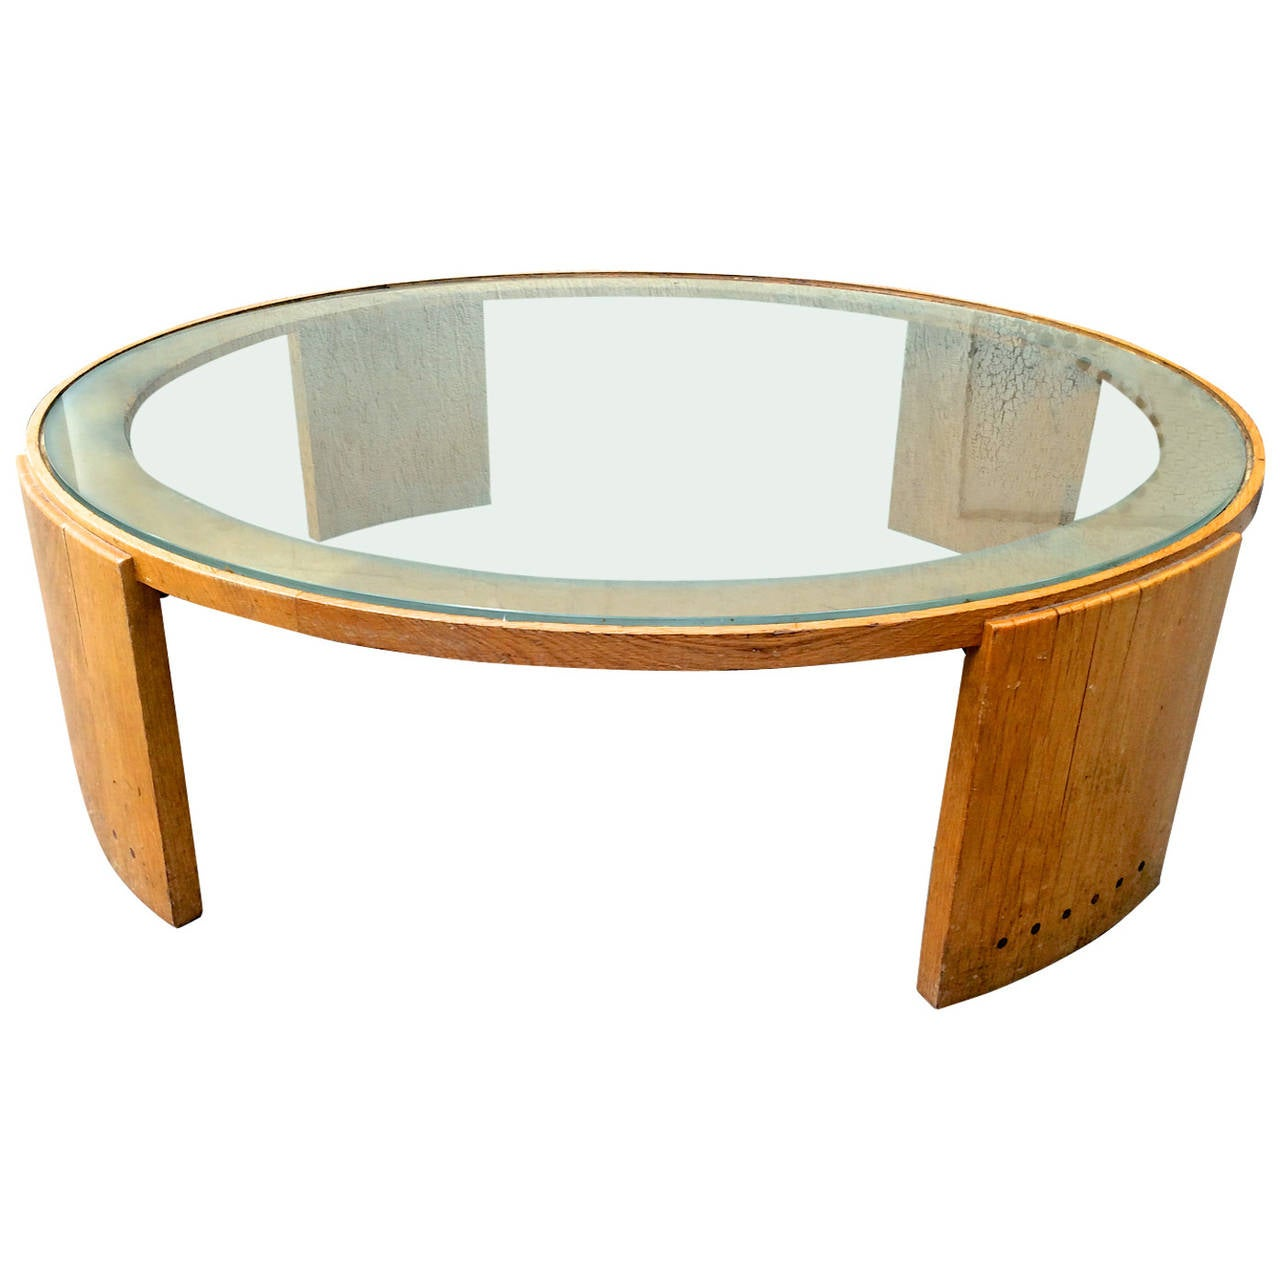 Jacques adnet very large round coffee table in oak and Glass coffee table tops